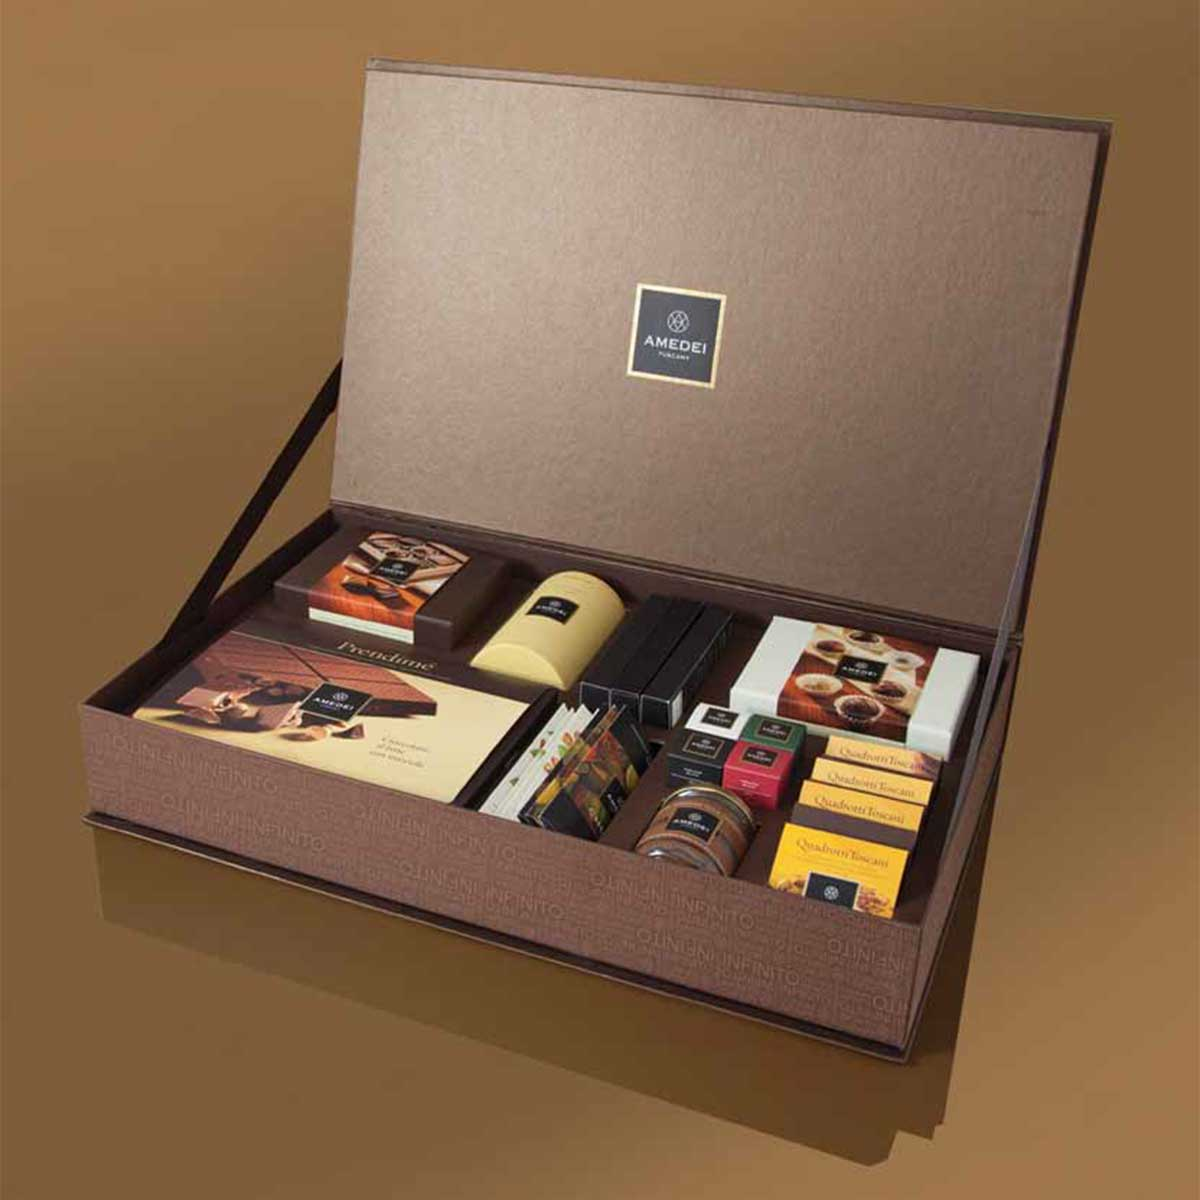 Amedei luxury chocolate gift box infinito categories negle Choice Image